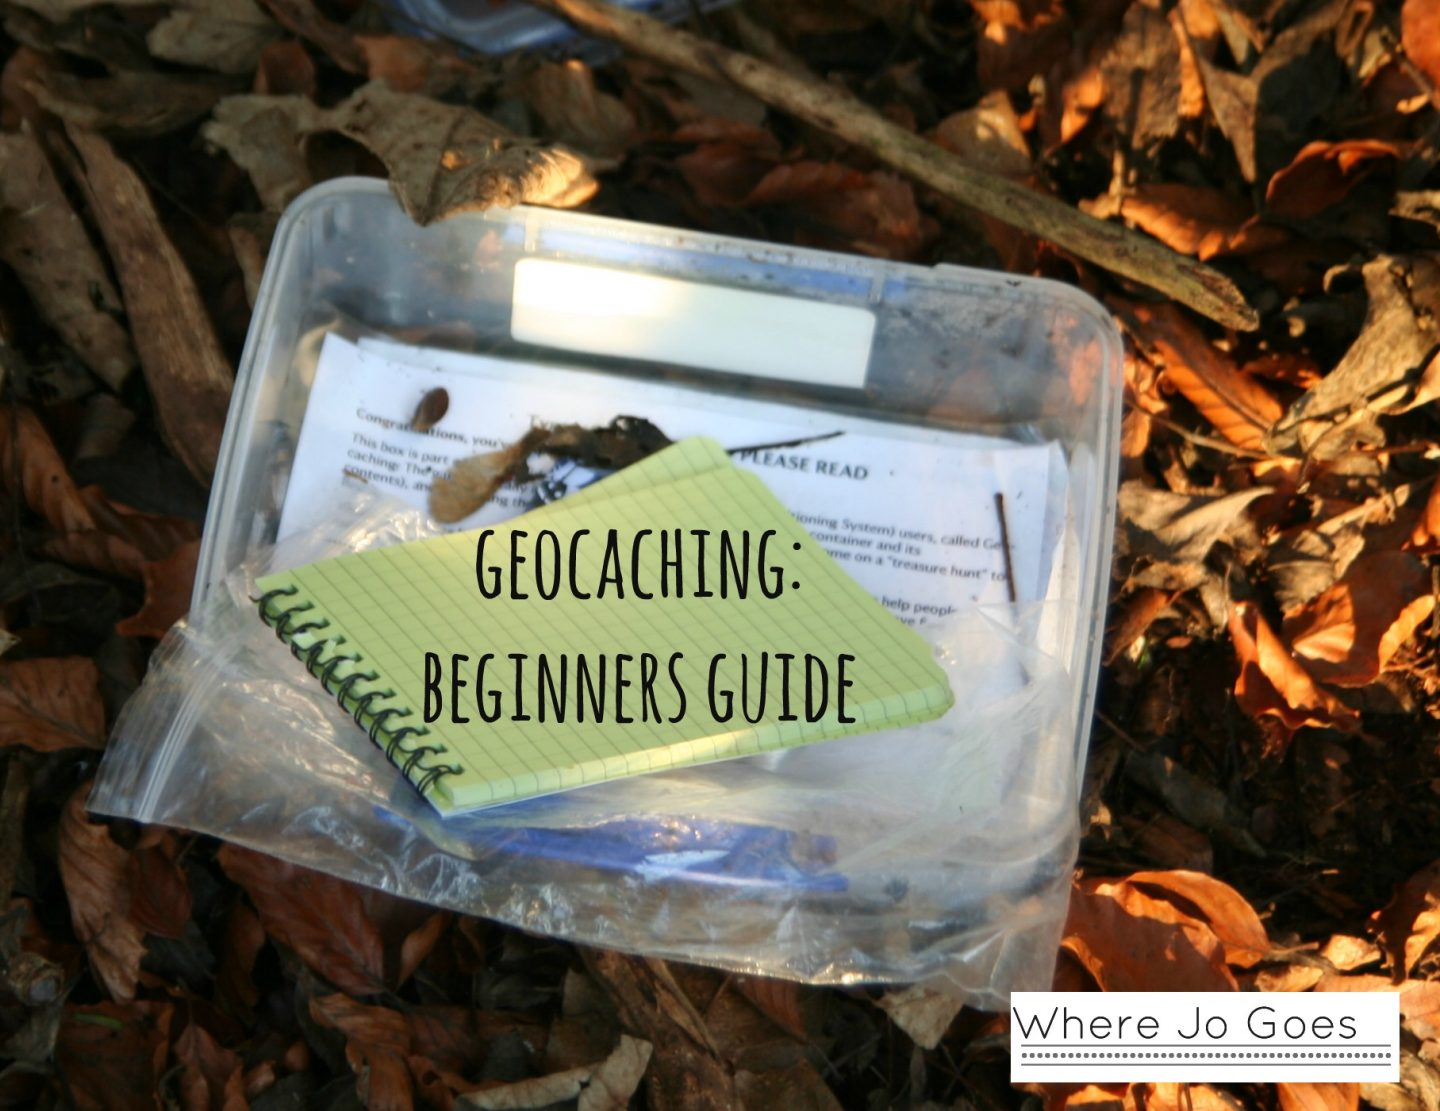 GEOCACHING: FAMILY FUN FOR FREE